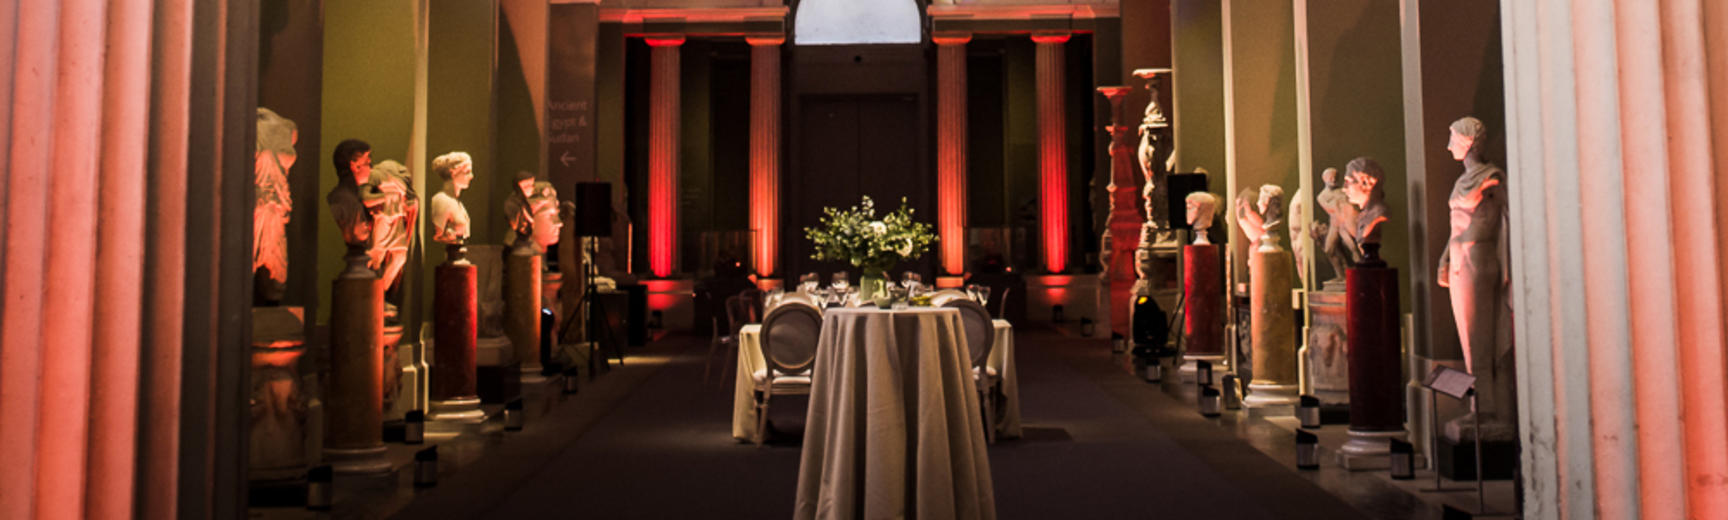 venue hire at the Ashmolean